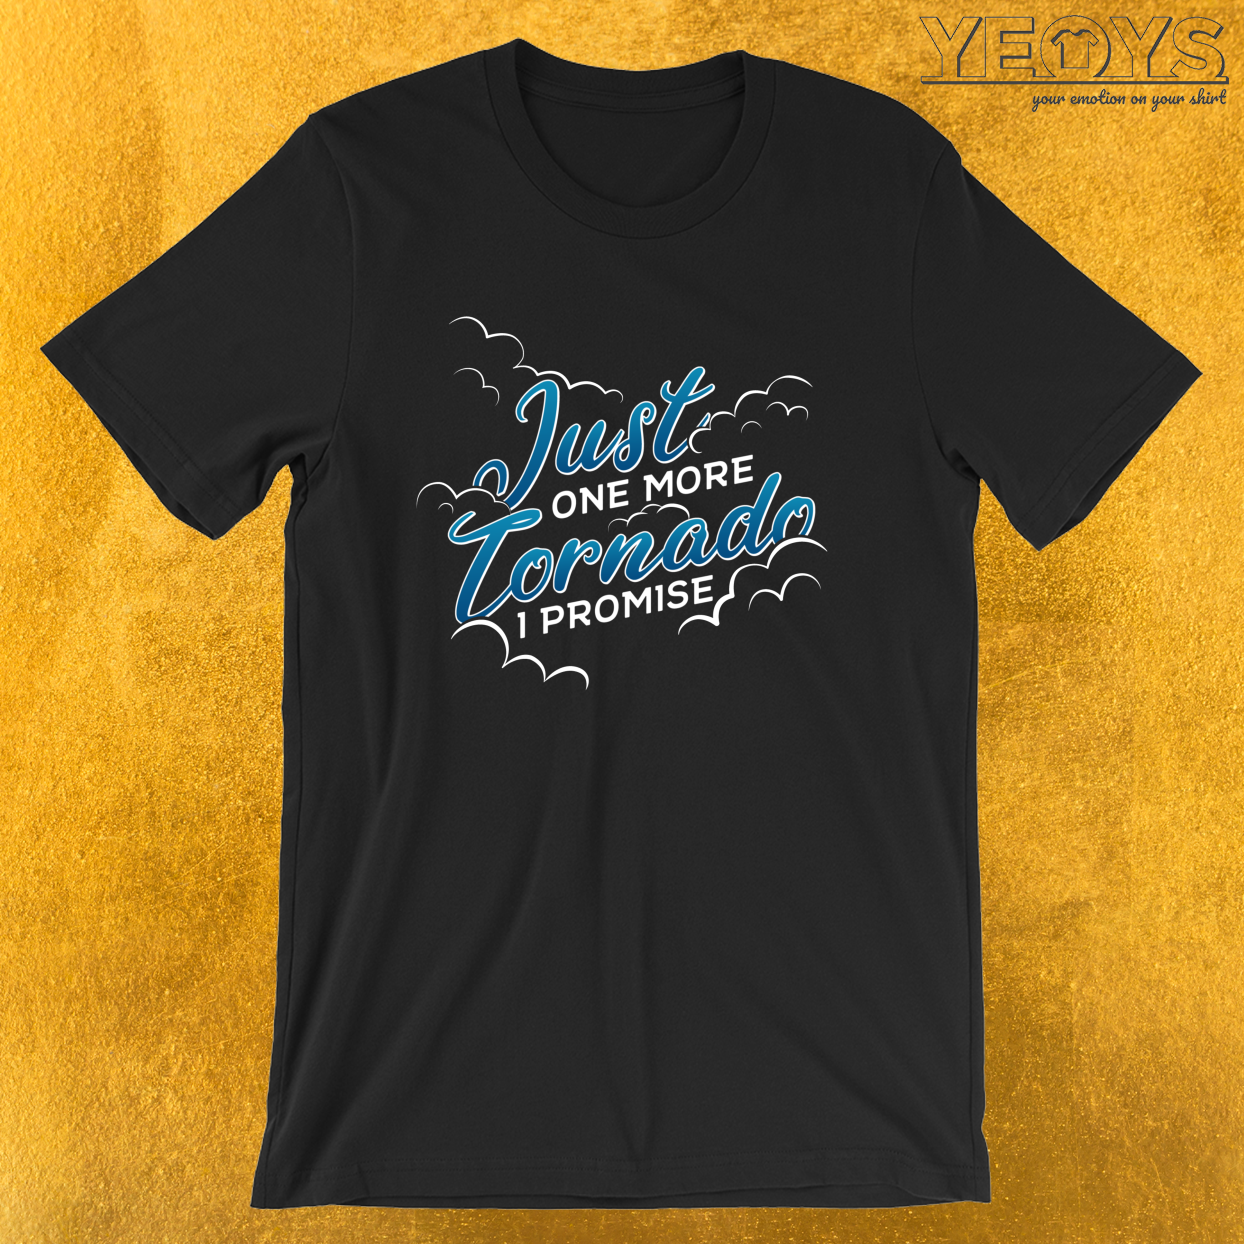 Just One More Tonado I Promise – Storm Chasing Tee